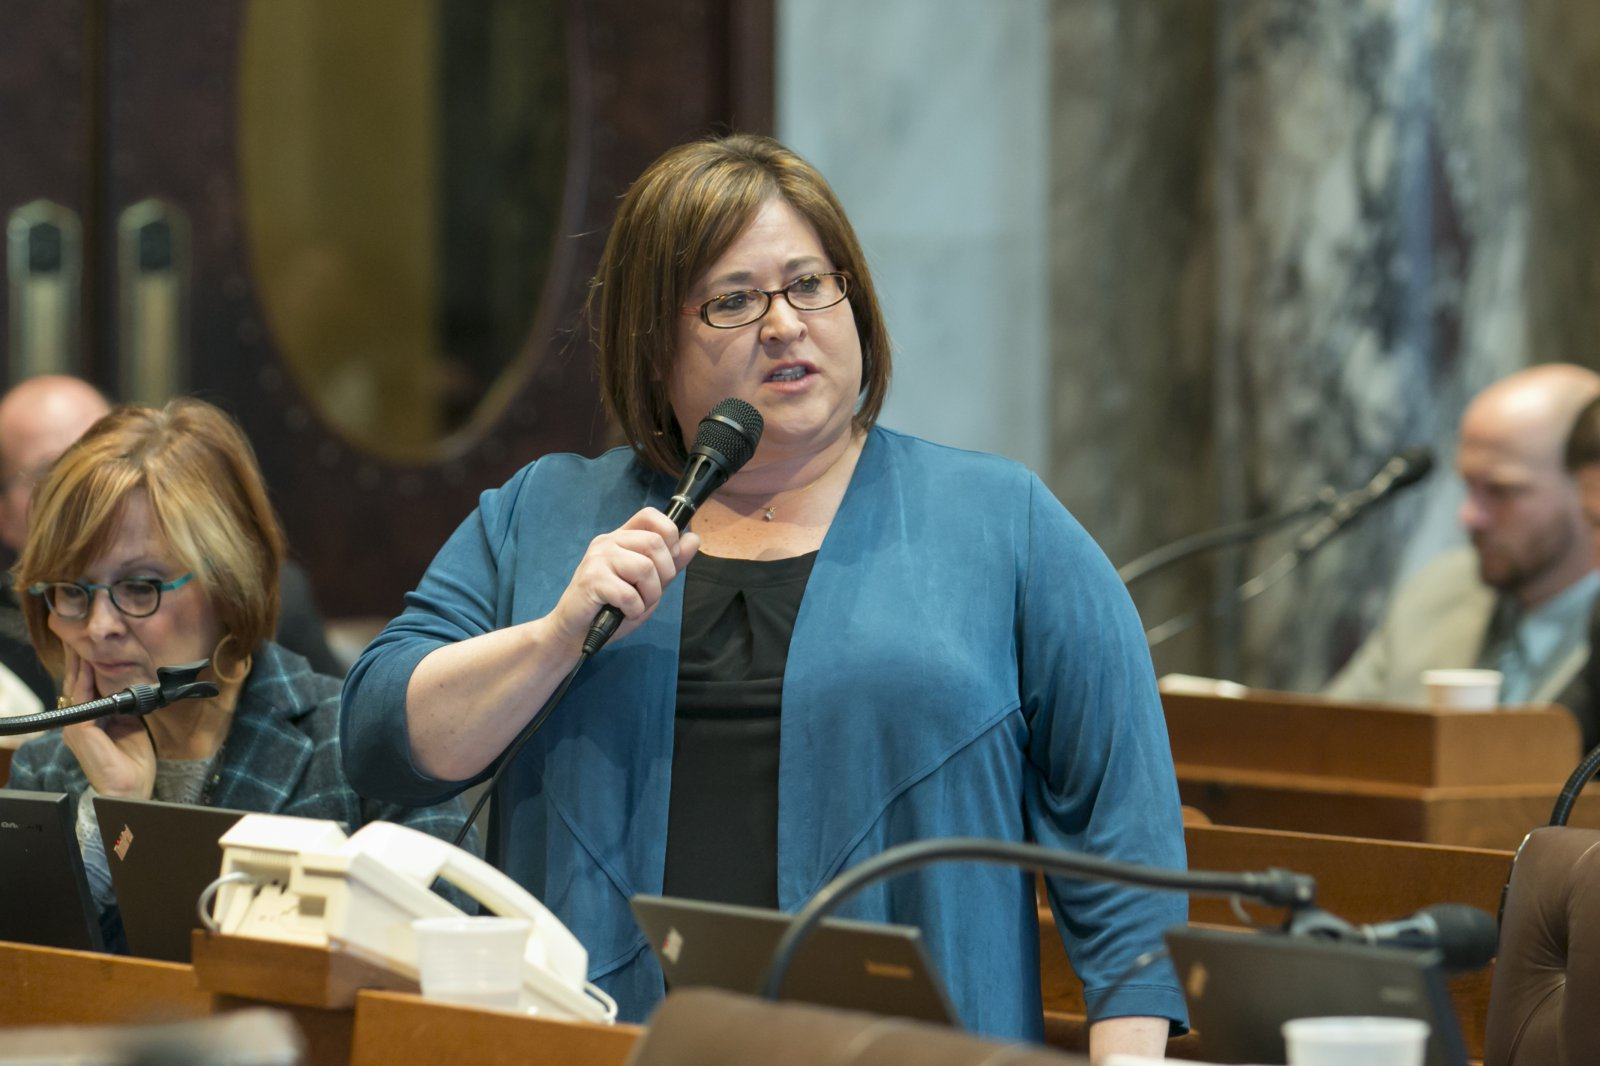 Representative Lisa Subeck's Statement on Assembly Passage of SB 76